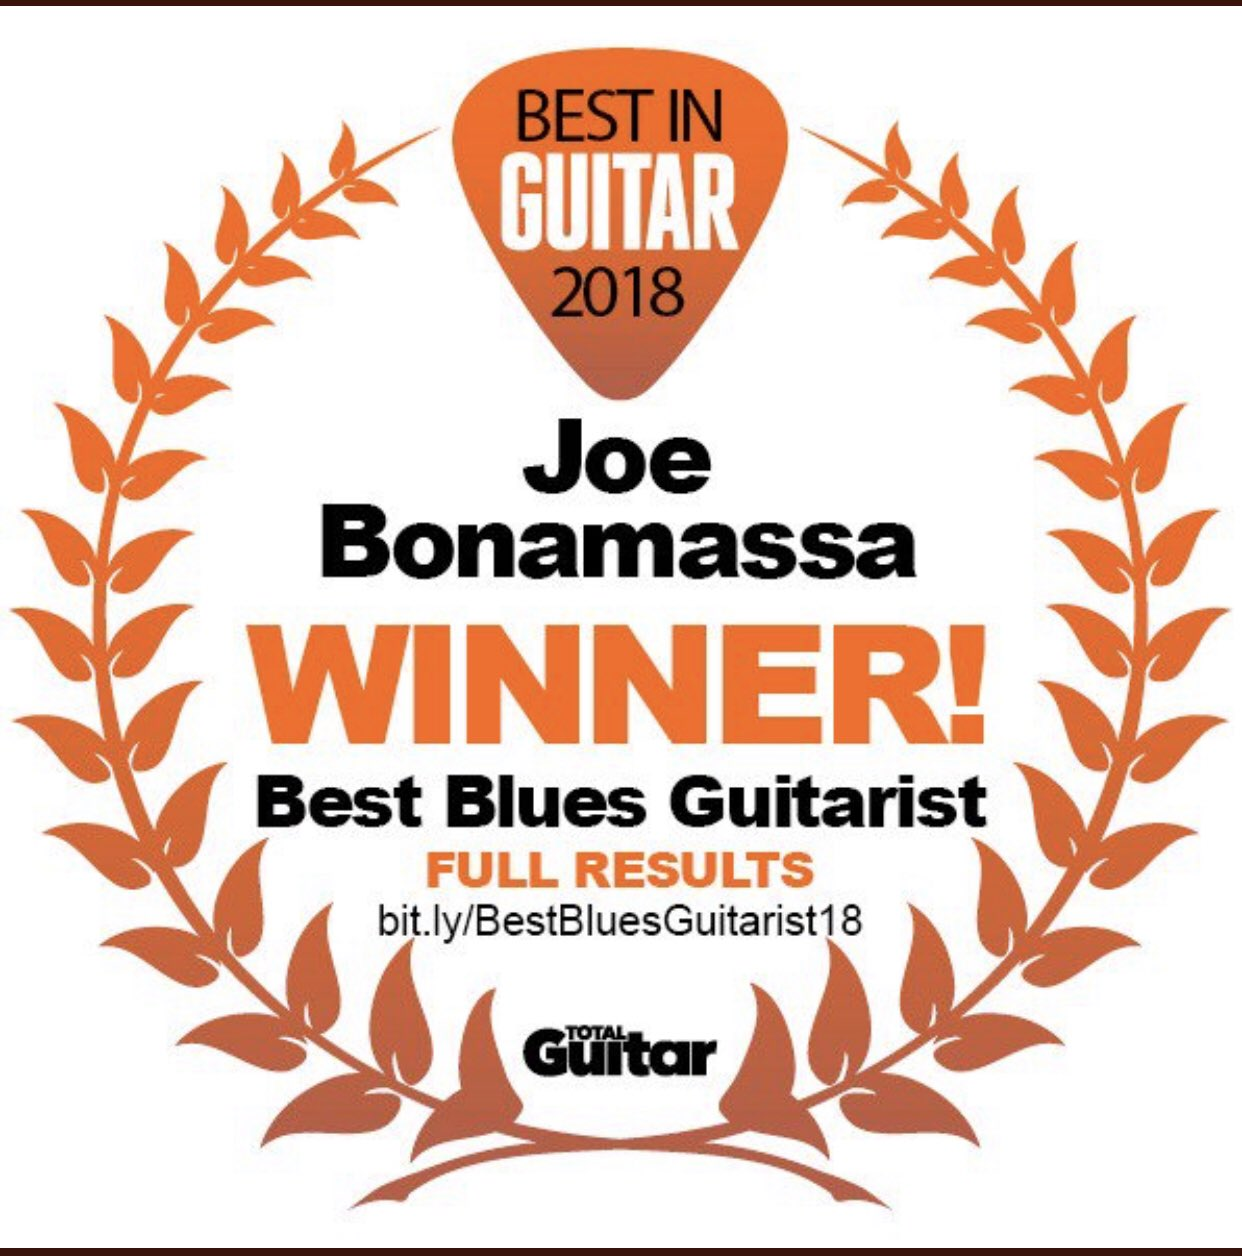 Thank you!!  I am very very honored by this. @MusicRadar @TotalGuitar 😎👍 https://t.co/aCHuXSRnmT